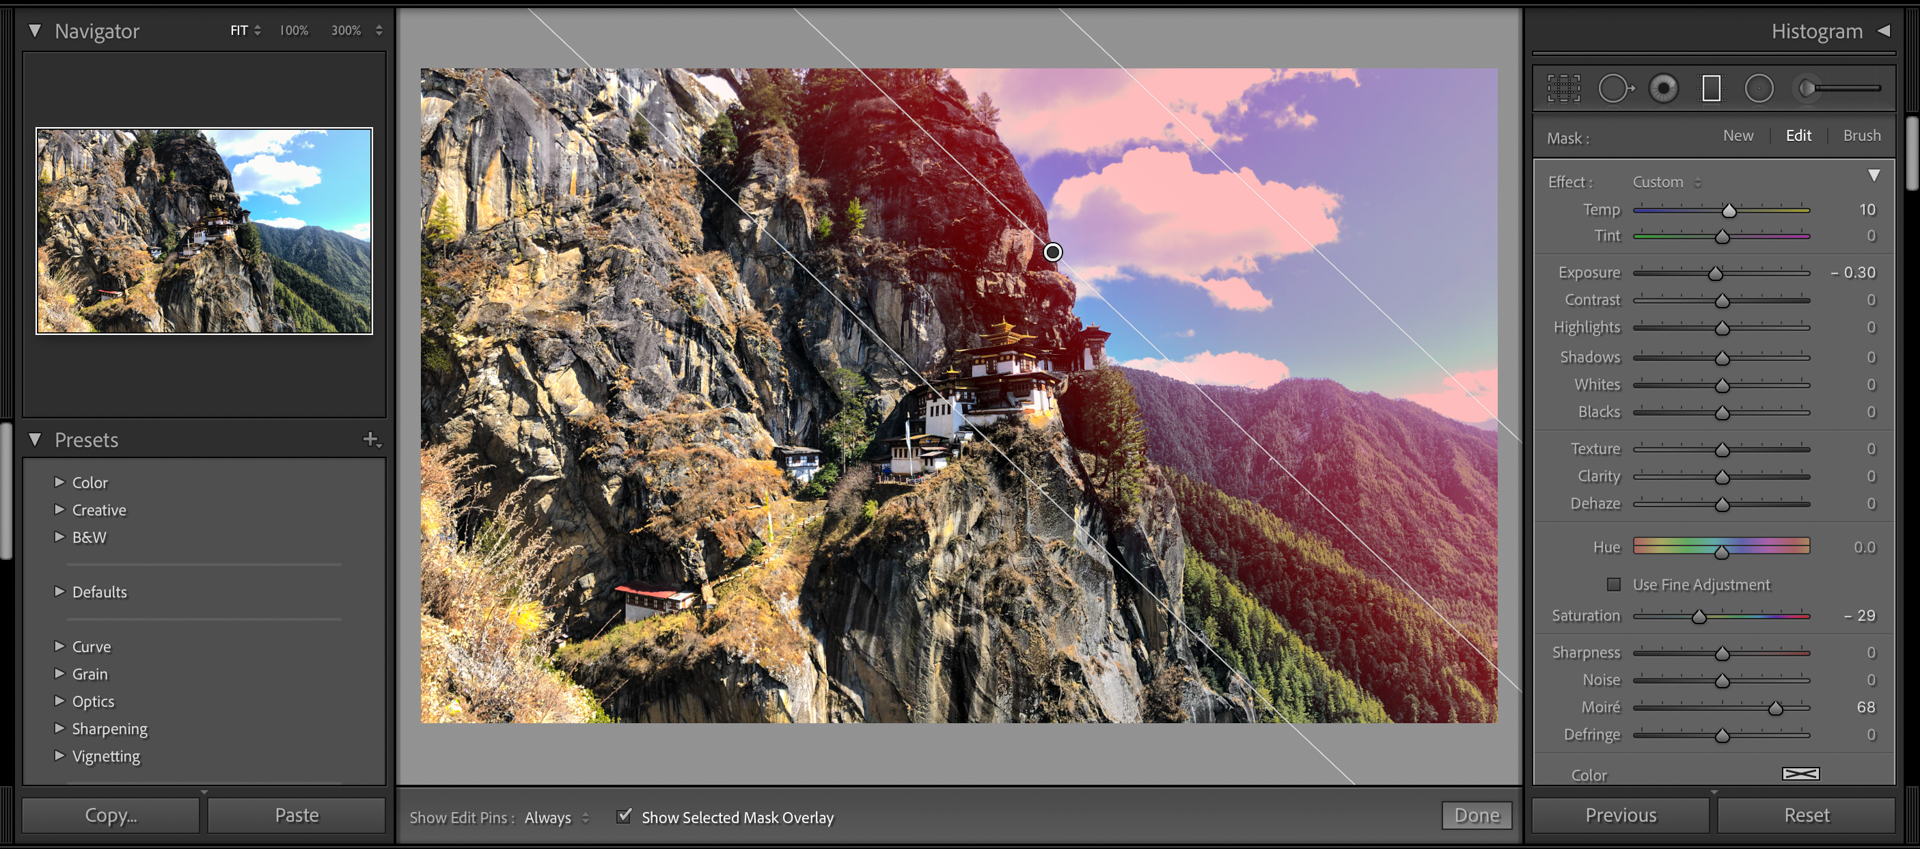 A linear gradient being applied in Lightroom over the sky section of the image